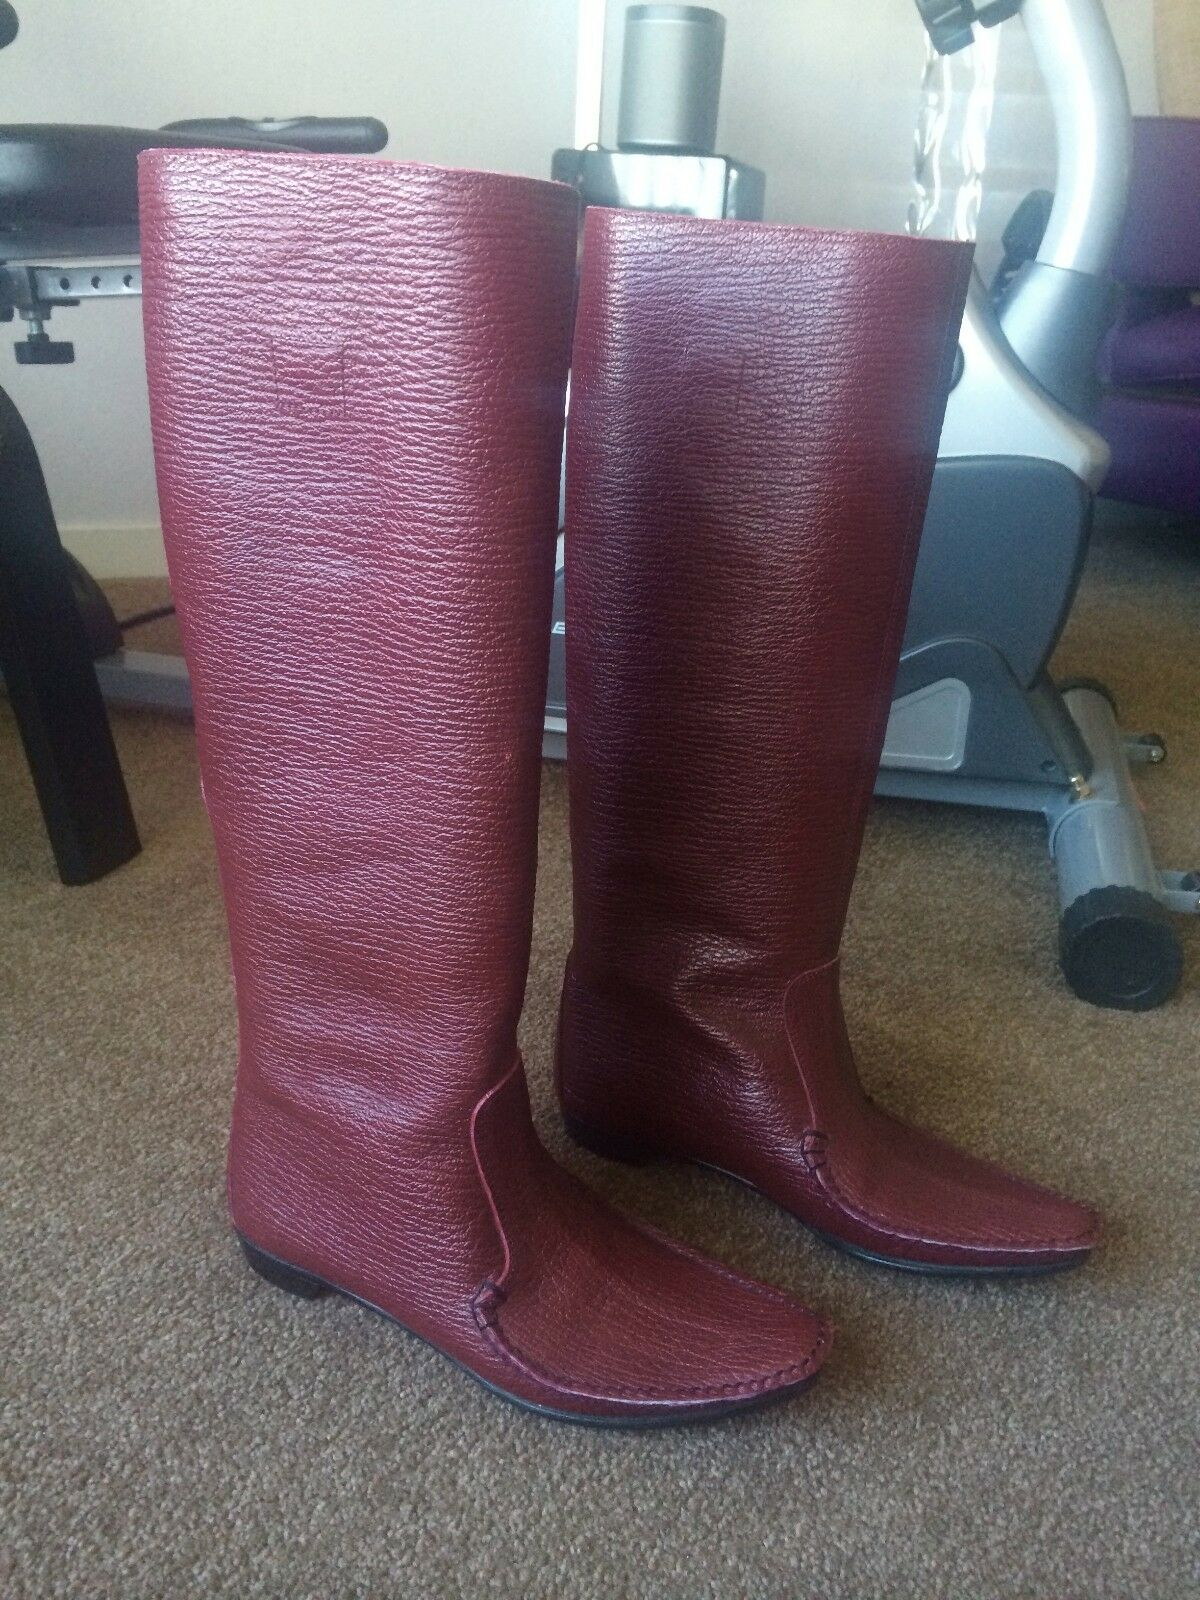 AUTH SIGERSON MORRISON KNEE HIGH FLAT BURGUNDY LEATHER BOOTS Sz 6 1/2 B